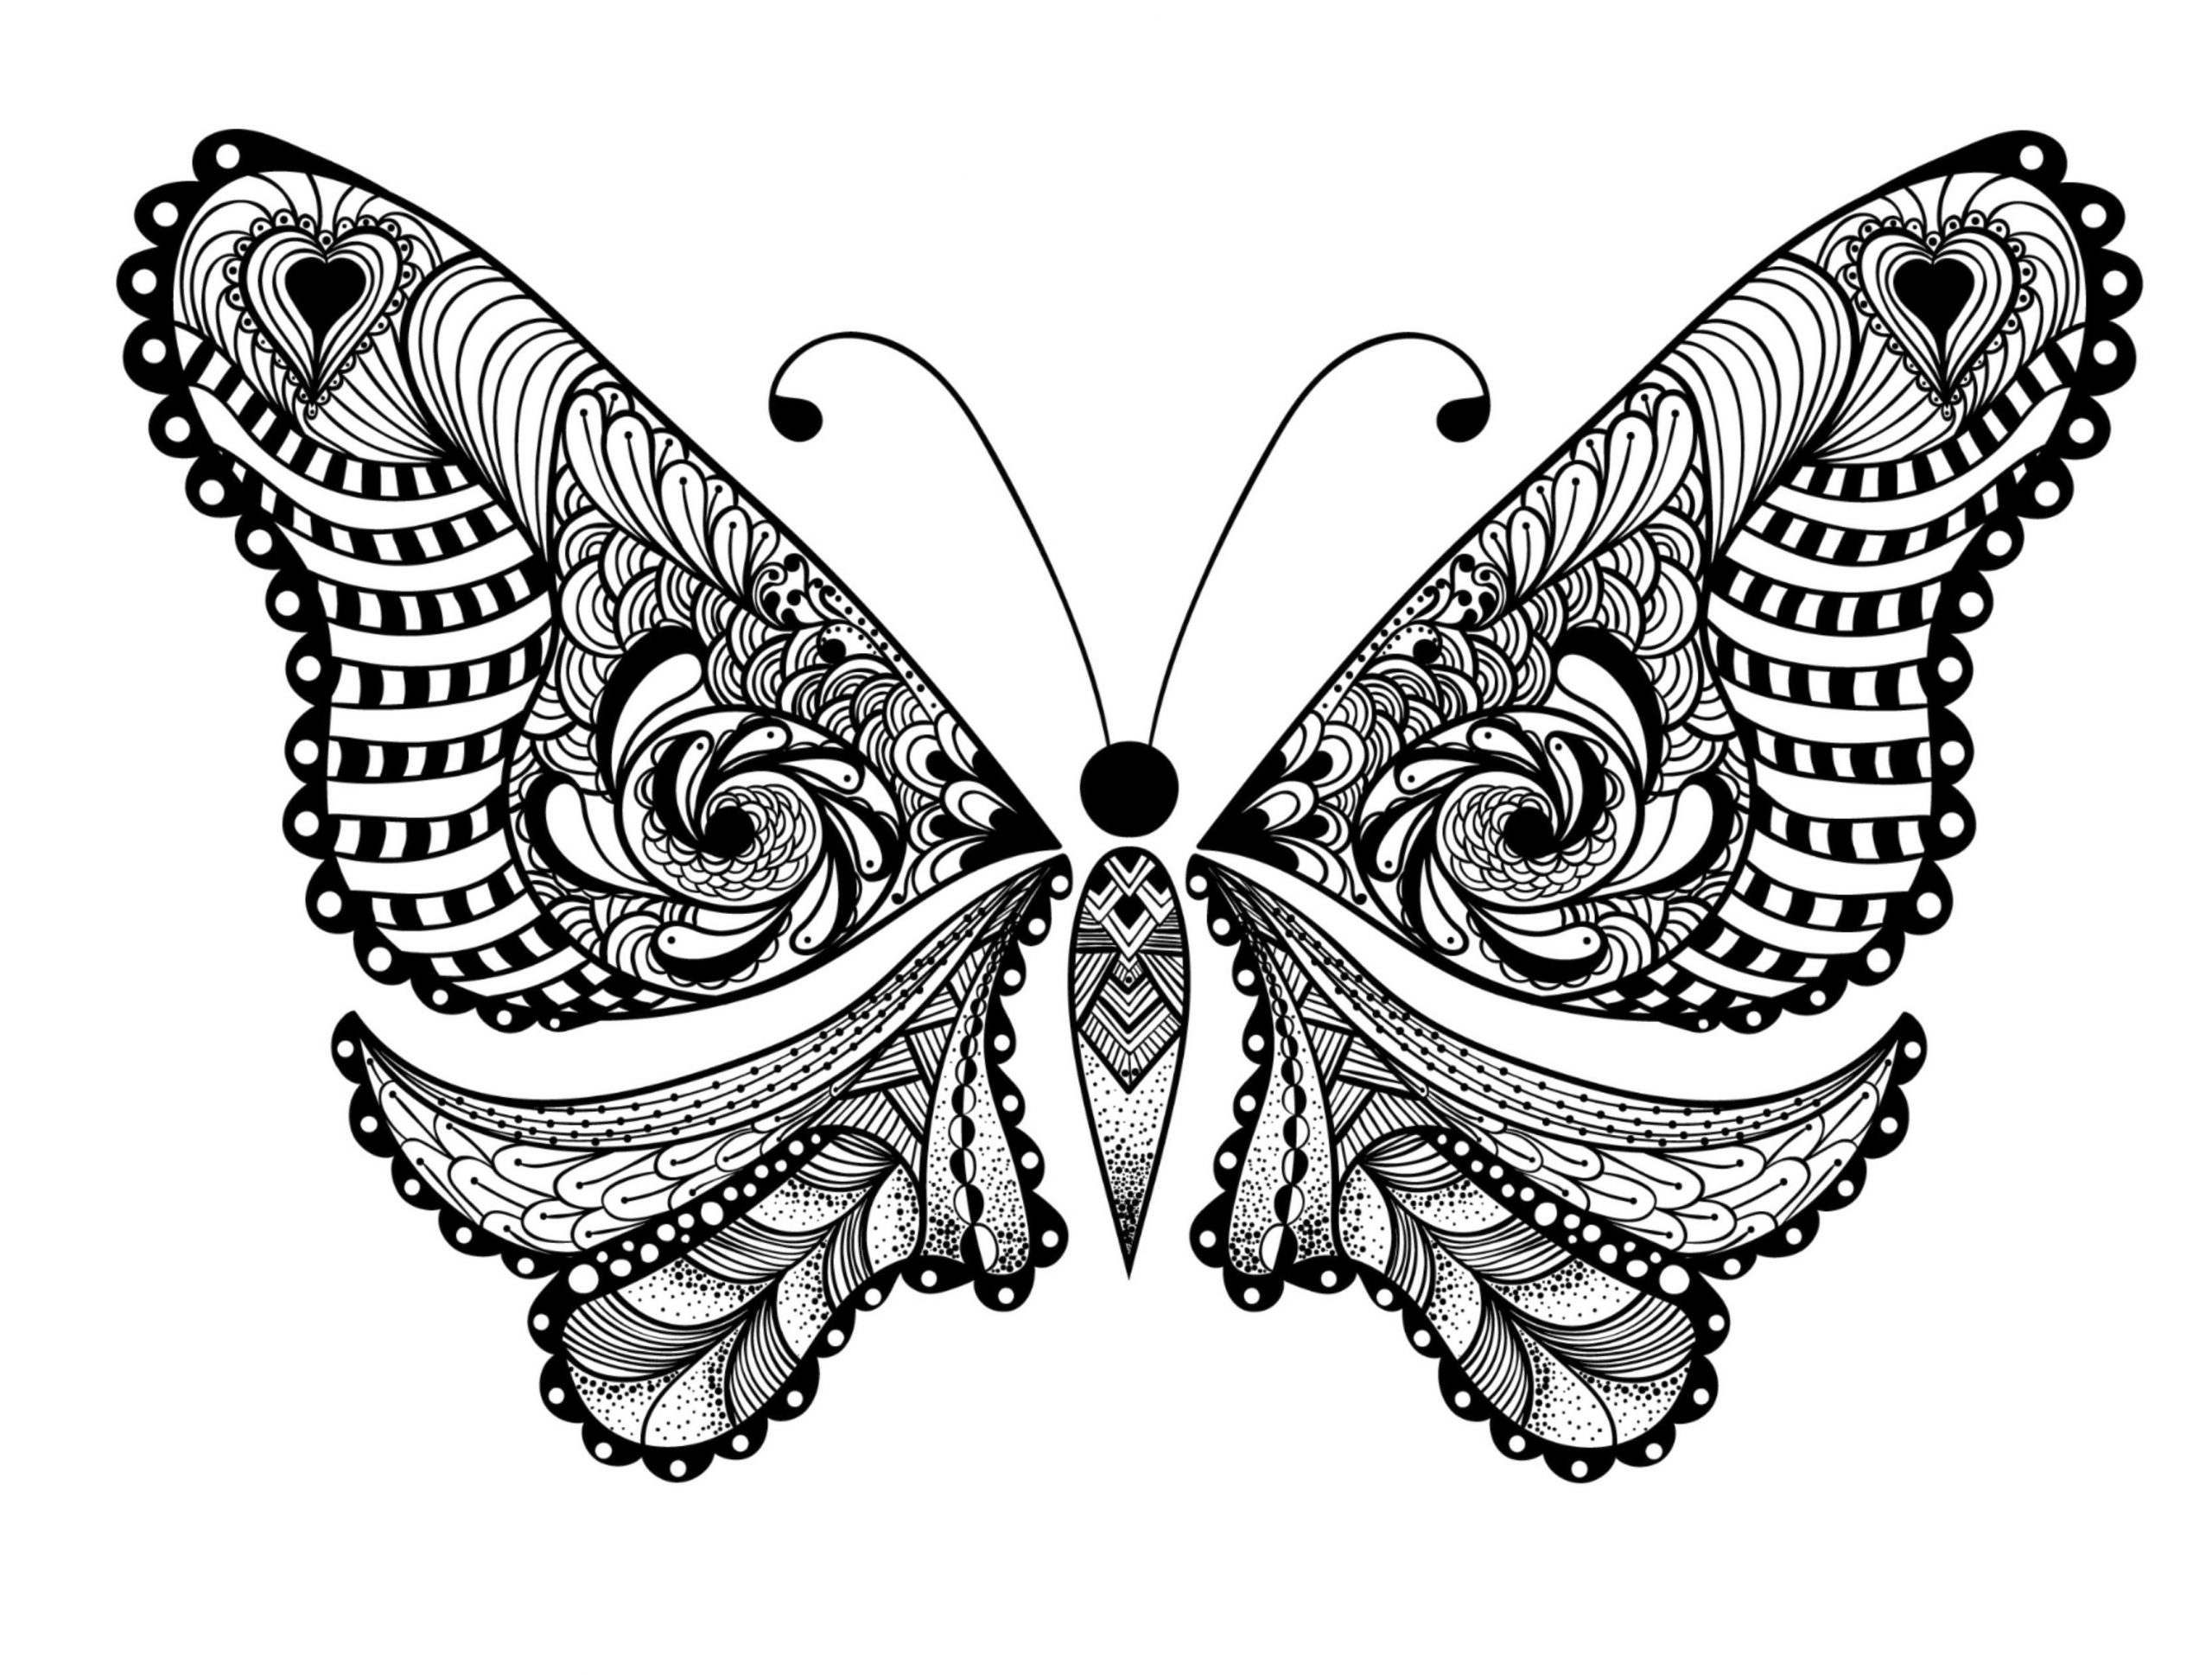 printable butterfly coloring sheets free printable butterfly coloring pages for kids printable coloring sheets butterfly 1 1